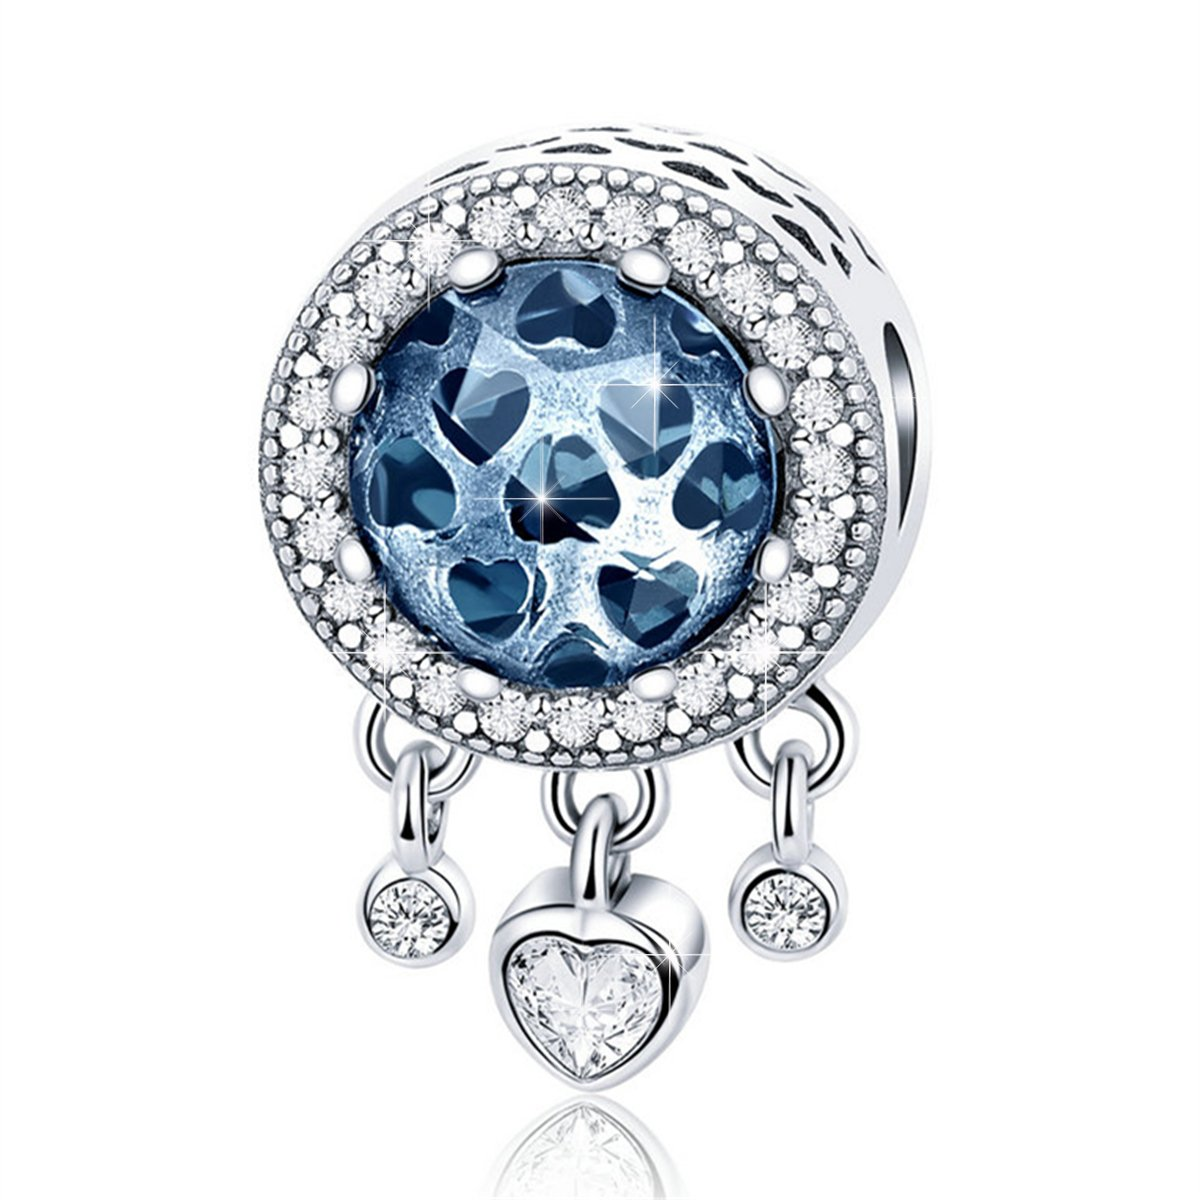 BAMOER 925 Sterling Silver Love Heart Charm with Sparkling Blue Cubic Zirconia for Women Girls Gift Fit for Snake Chain Bracelet Necklace Bright Charm Heart